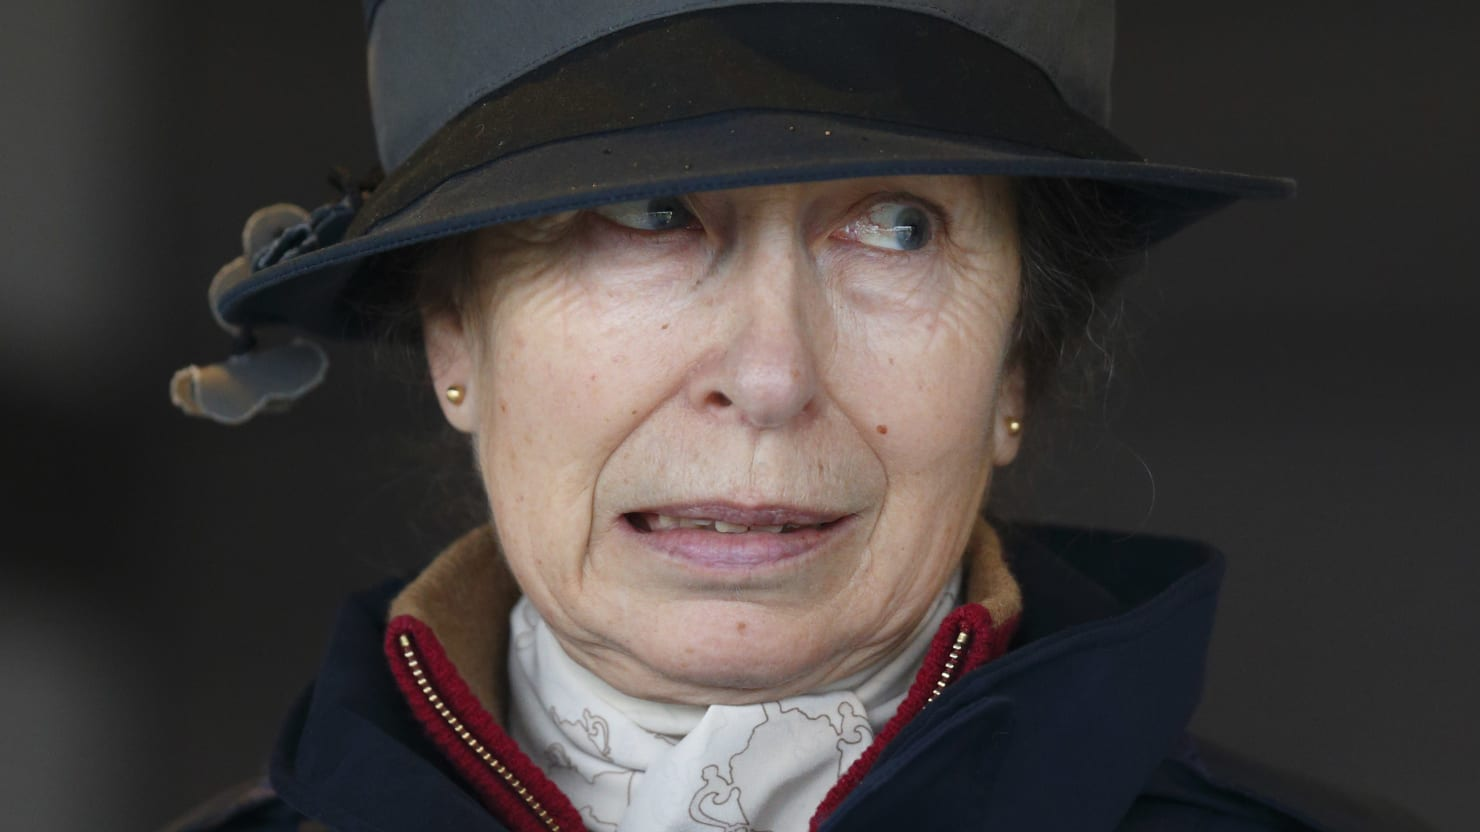 Princess Anne May Not Have Dissed Trump. She's Still a Royal ...